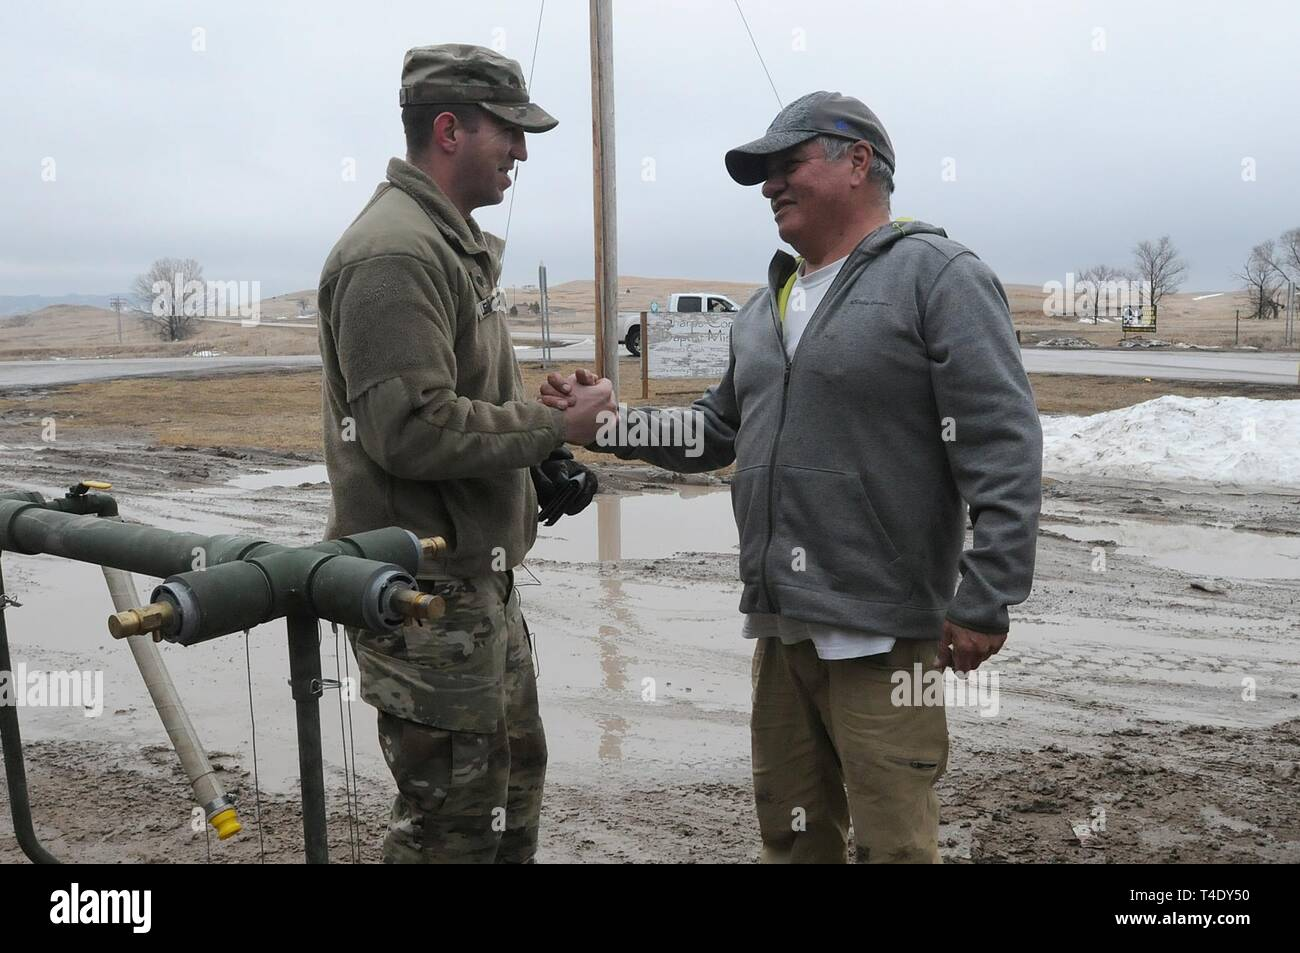 Lester Iron Cloud thanks U.S. Army Spc. Tracy Lennick, with Company A, 139th Brigade Support Battalion, South Dakota Army National Guard, after receiving drinkable water at Sharps Corner, S.D, on the Pine Ridge Reservation, March 25, 2019. Thirteen SDARNG Soldiers were activated for state duty in Pine Ridge after a county waterline failed due to extreme flooding leaving residents in seven communities without water in their homes. Stock Photo